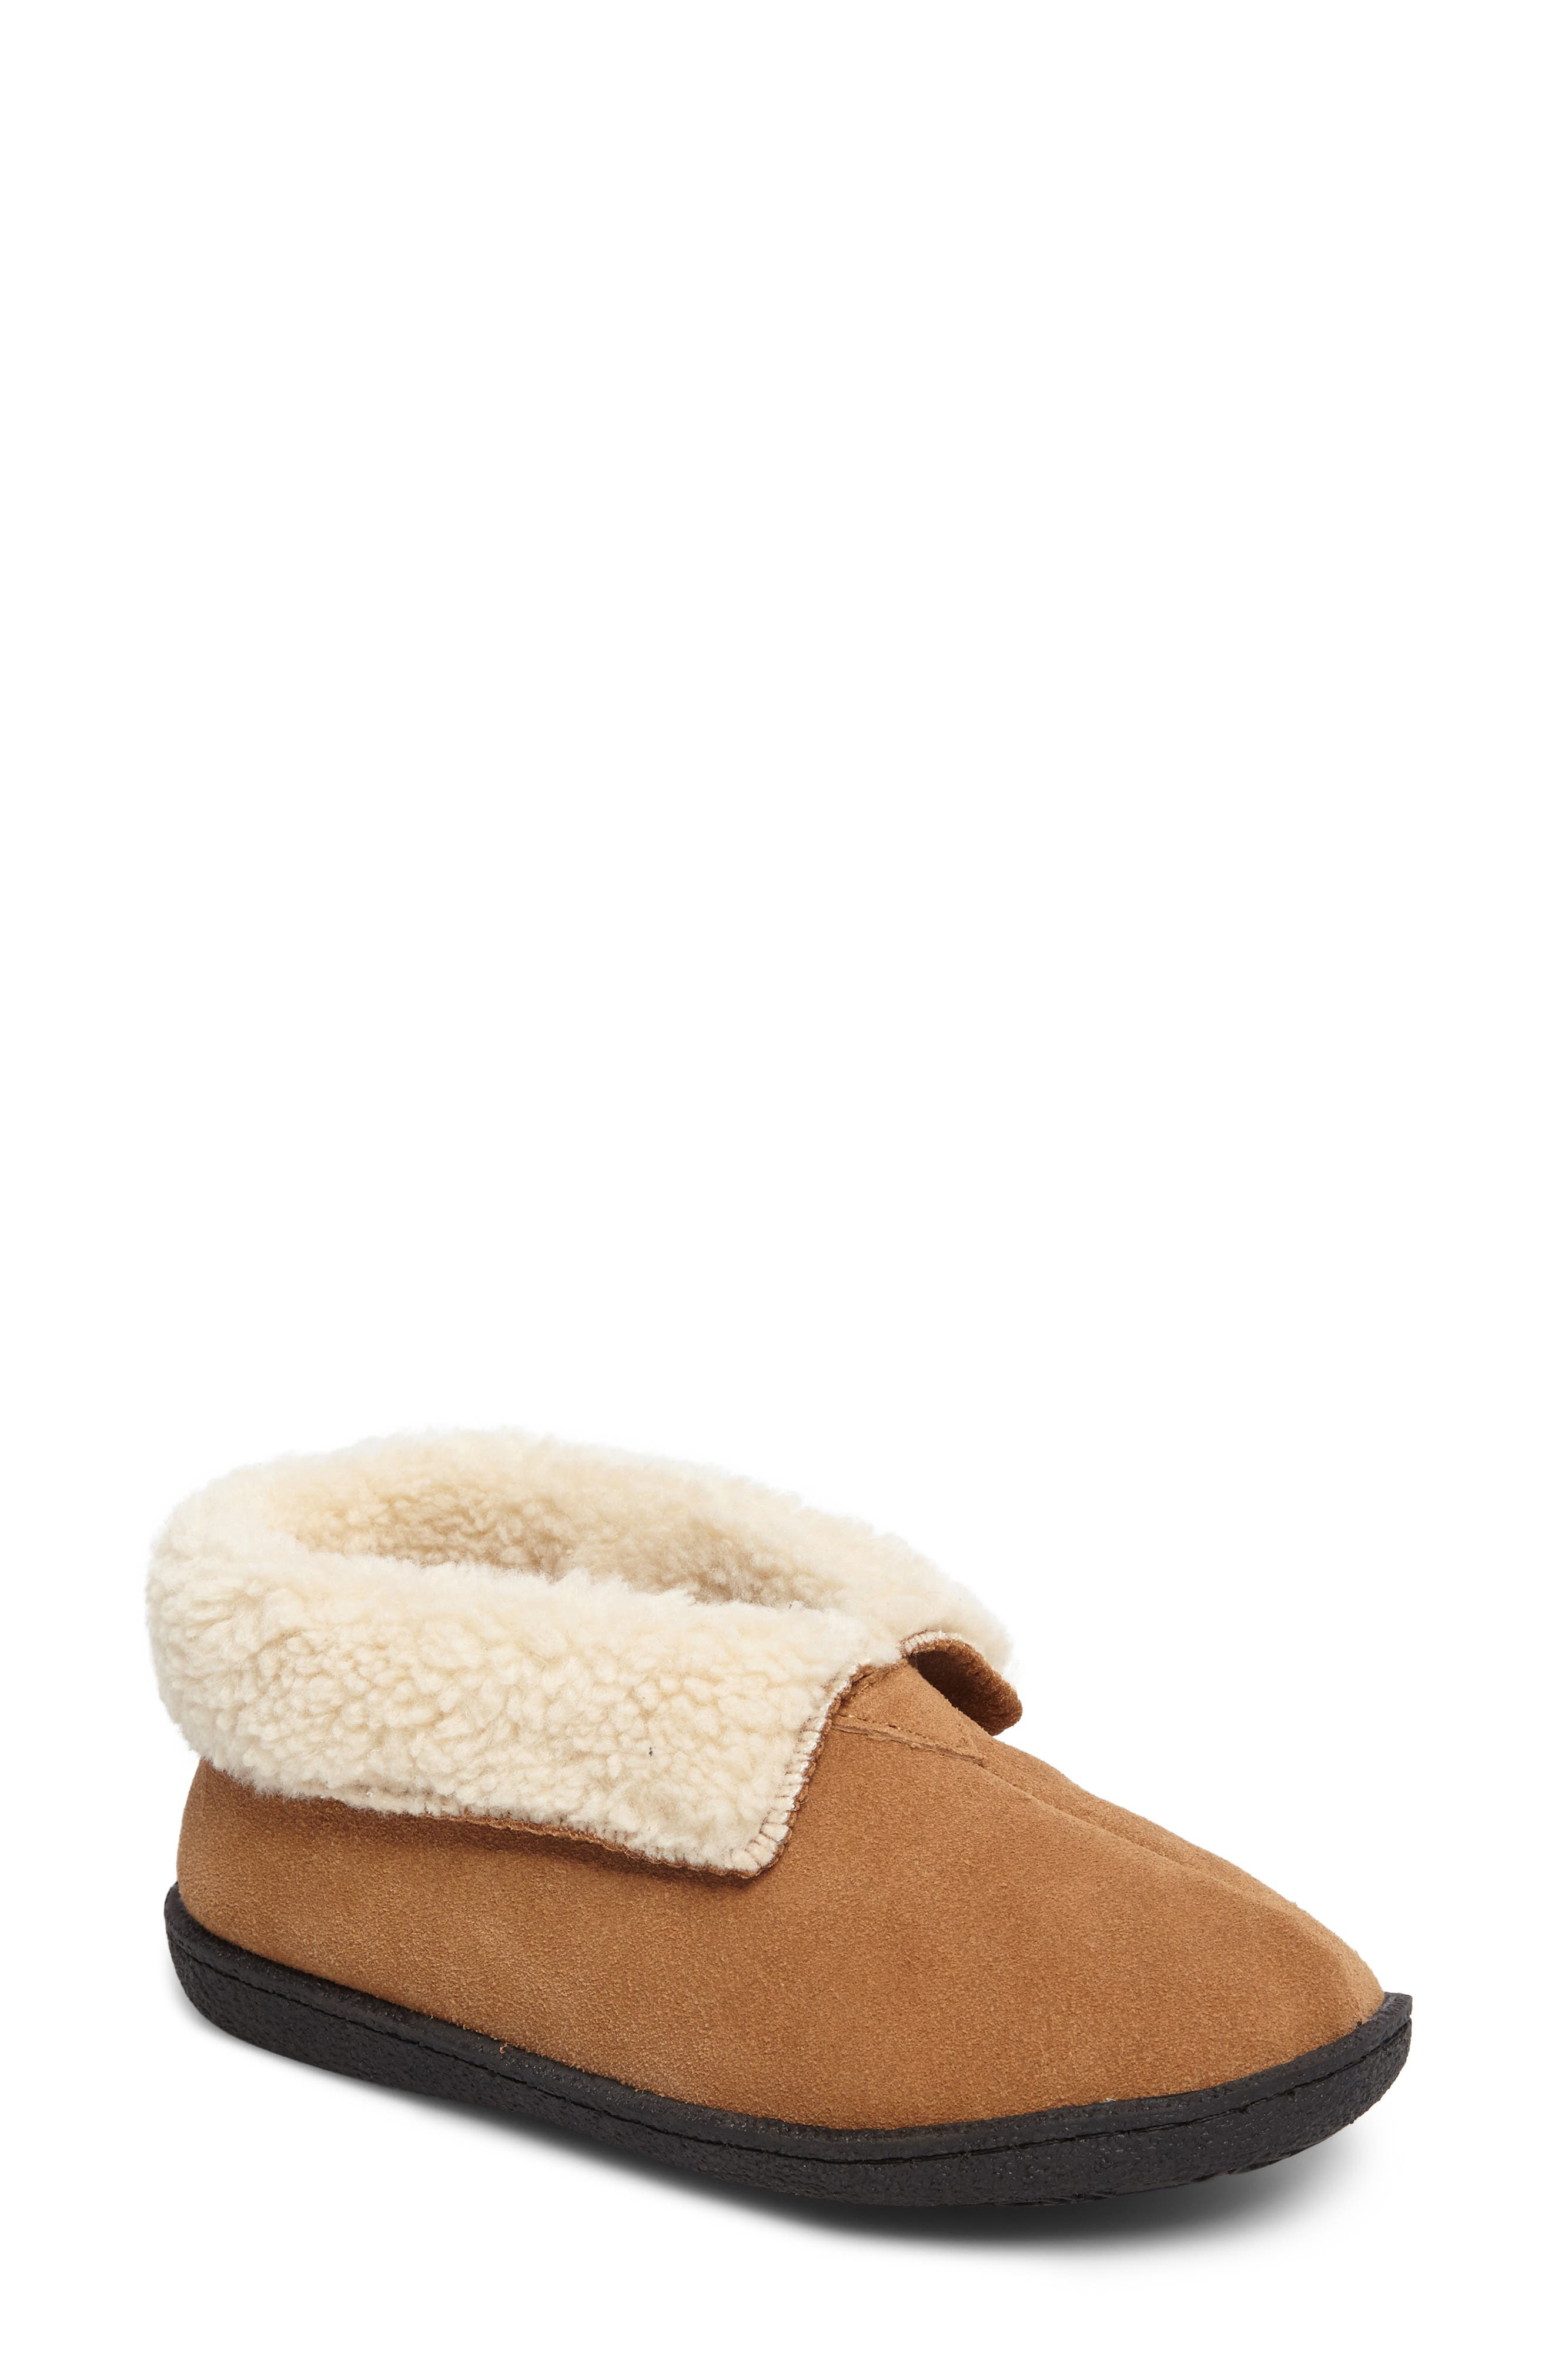 Lodge II Slipper,                             Main thumbnail 1, color,                             Chestnut